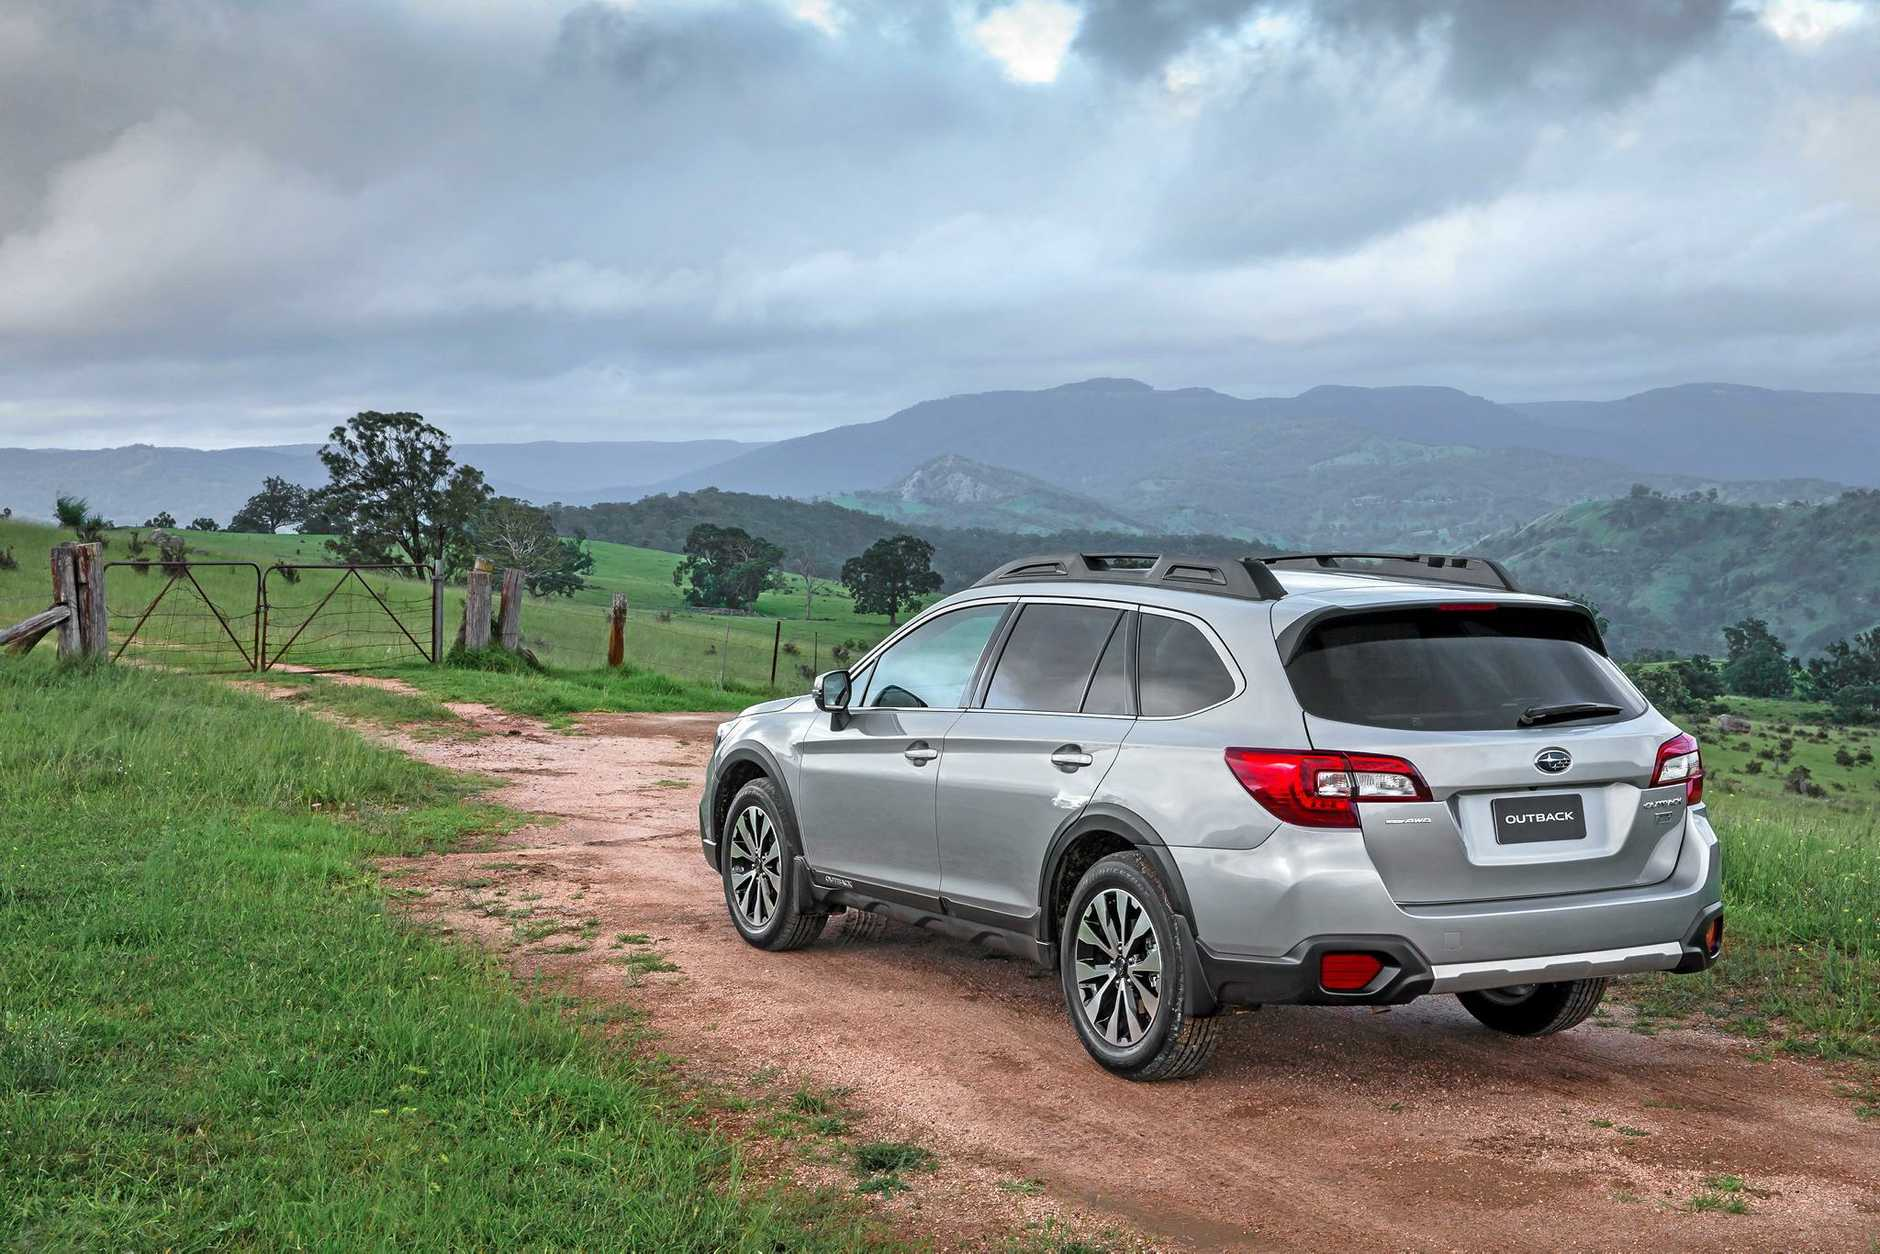 The 2016 model Subaru Outback 2.0D Premium.